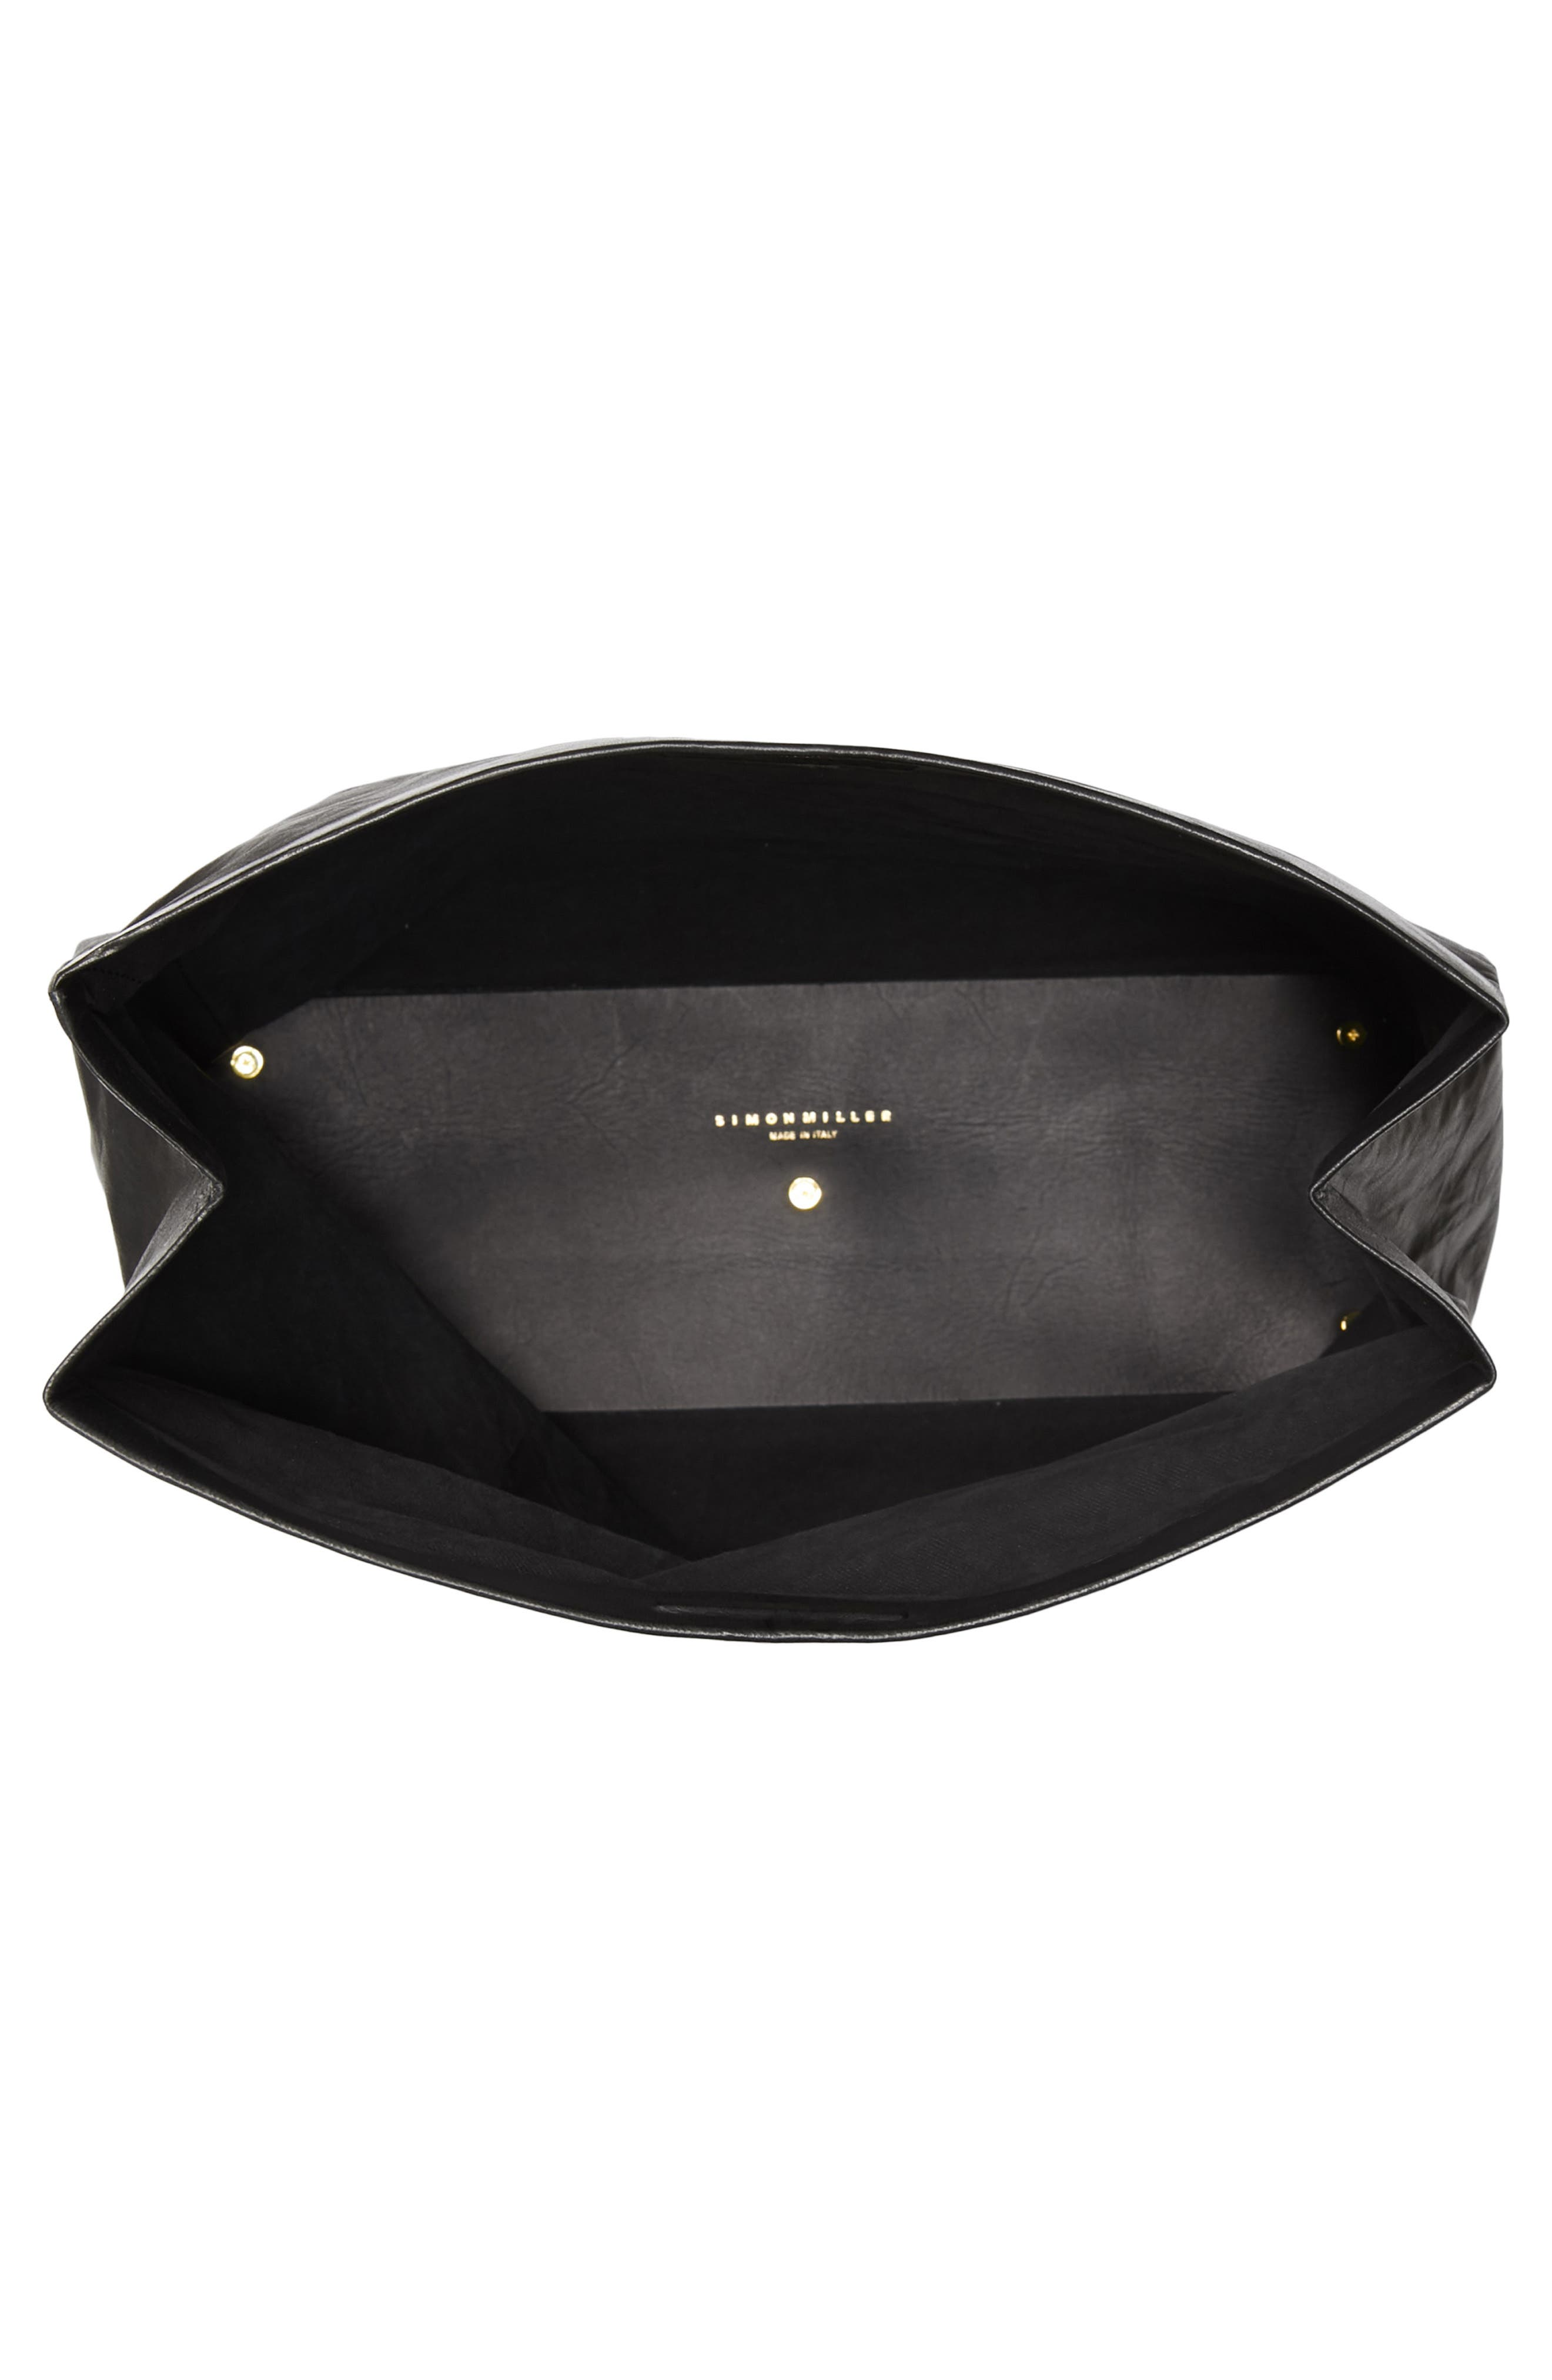 Lunchbag Leather Roll Top Clutch,                             Alternate thumbnail 4, color,                             Black